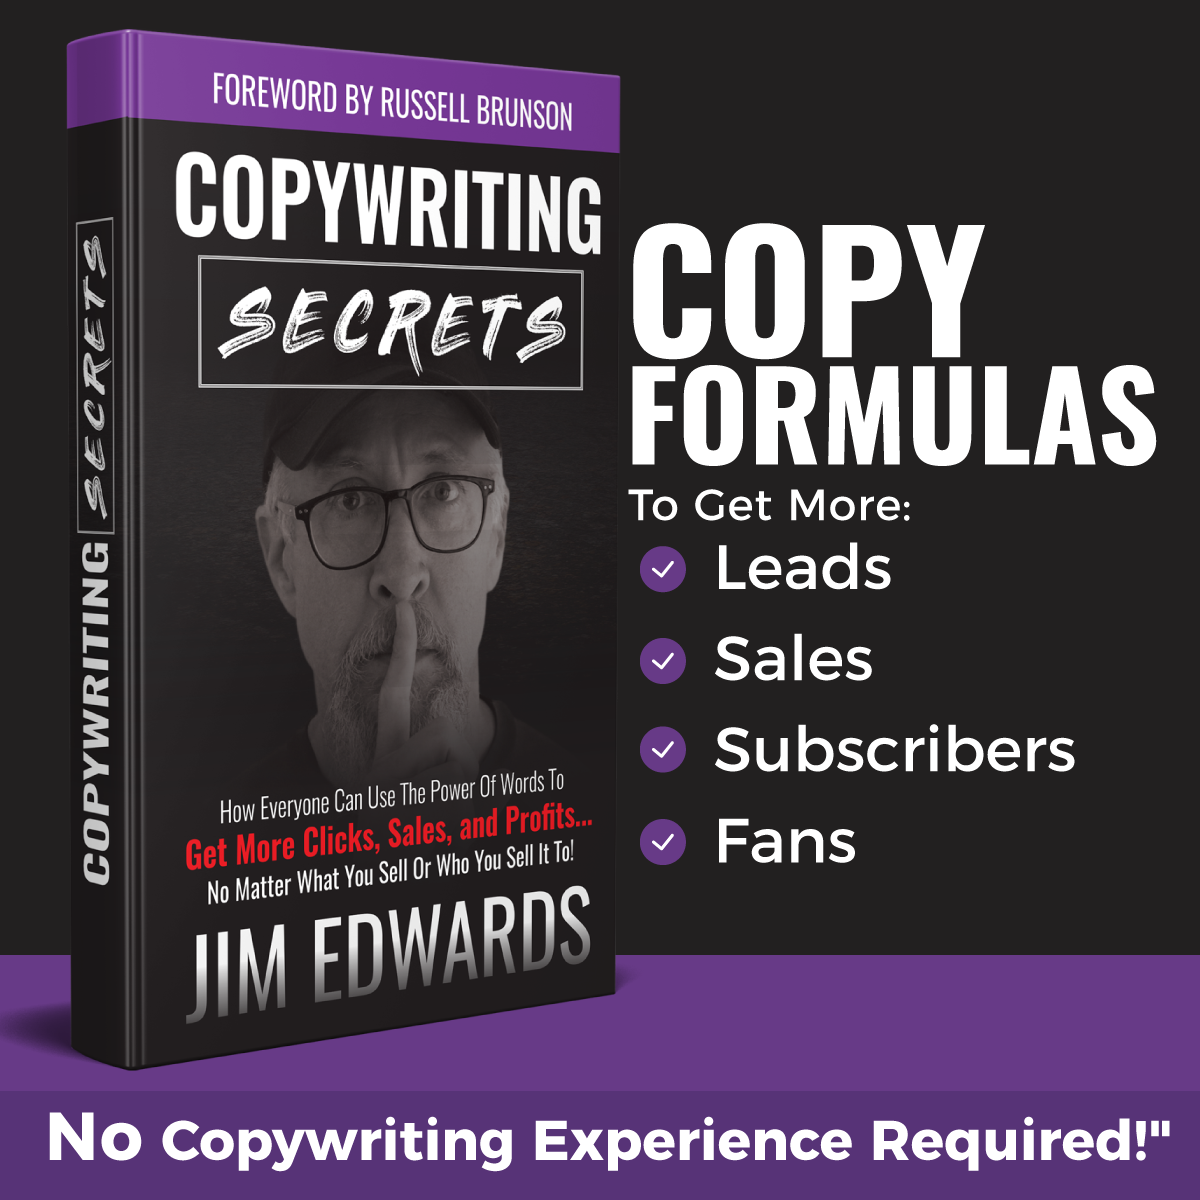 Copywriting Course Orlando